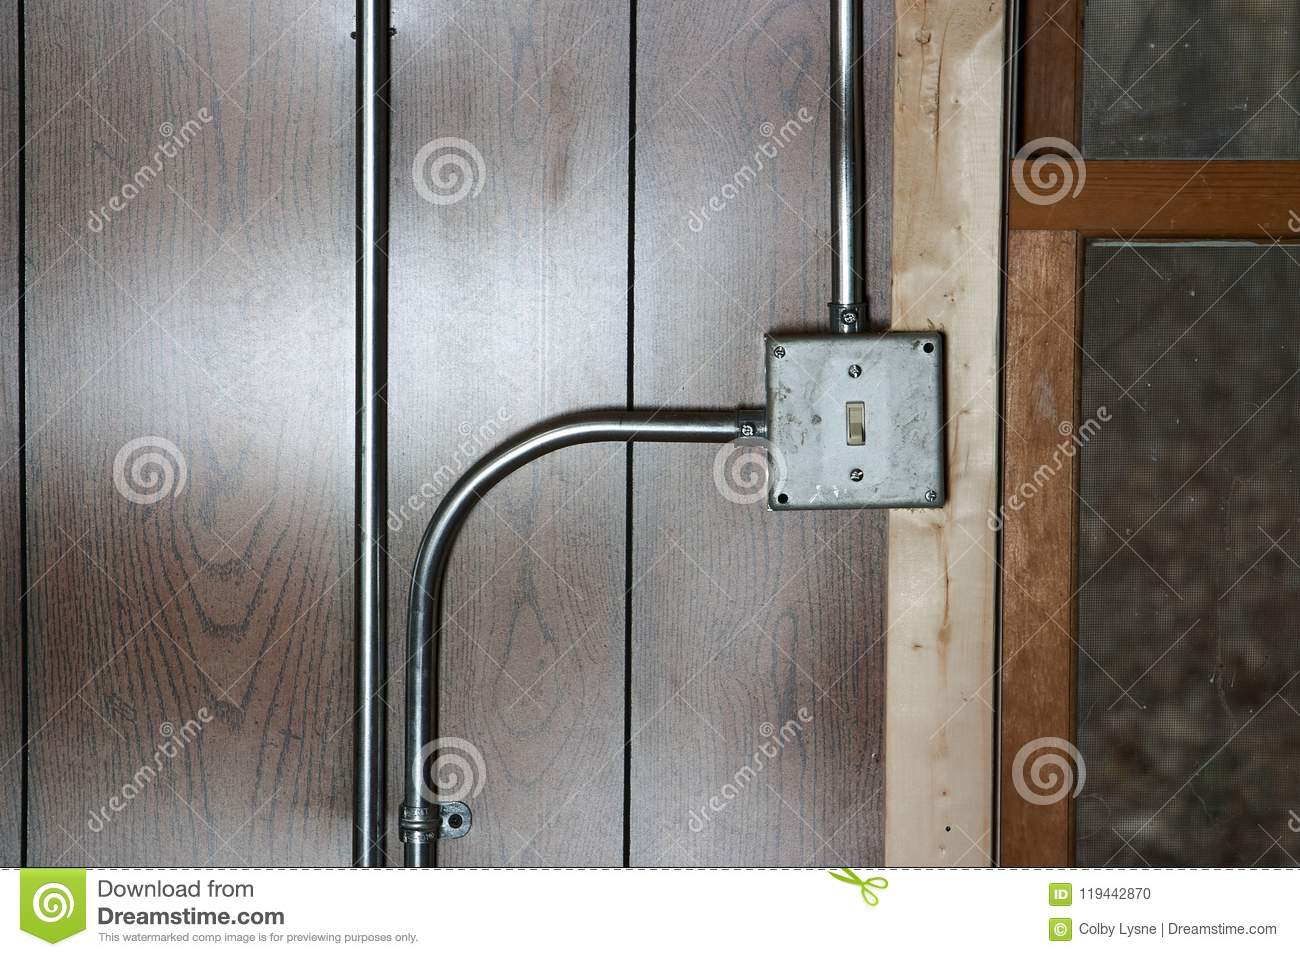 Old Wiring Conduit Diagram Schema Img A Junction Box Vintage Metal Electricity Switch Stock Photo Auto